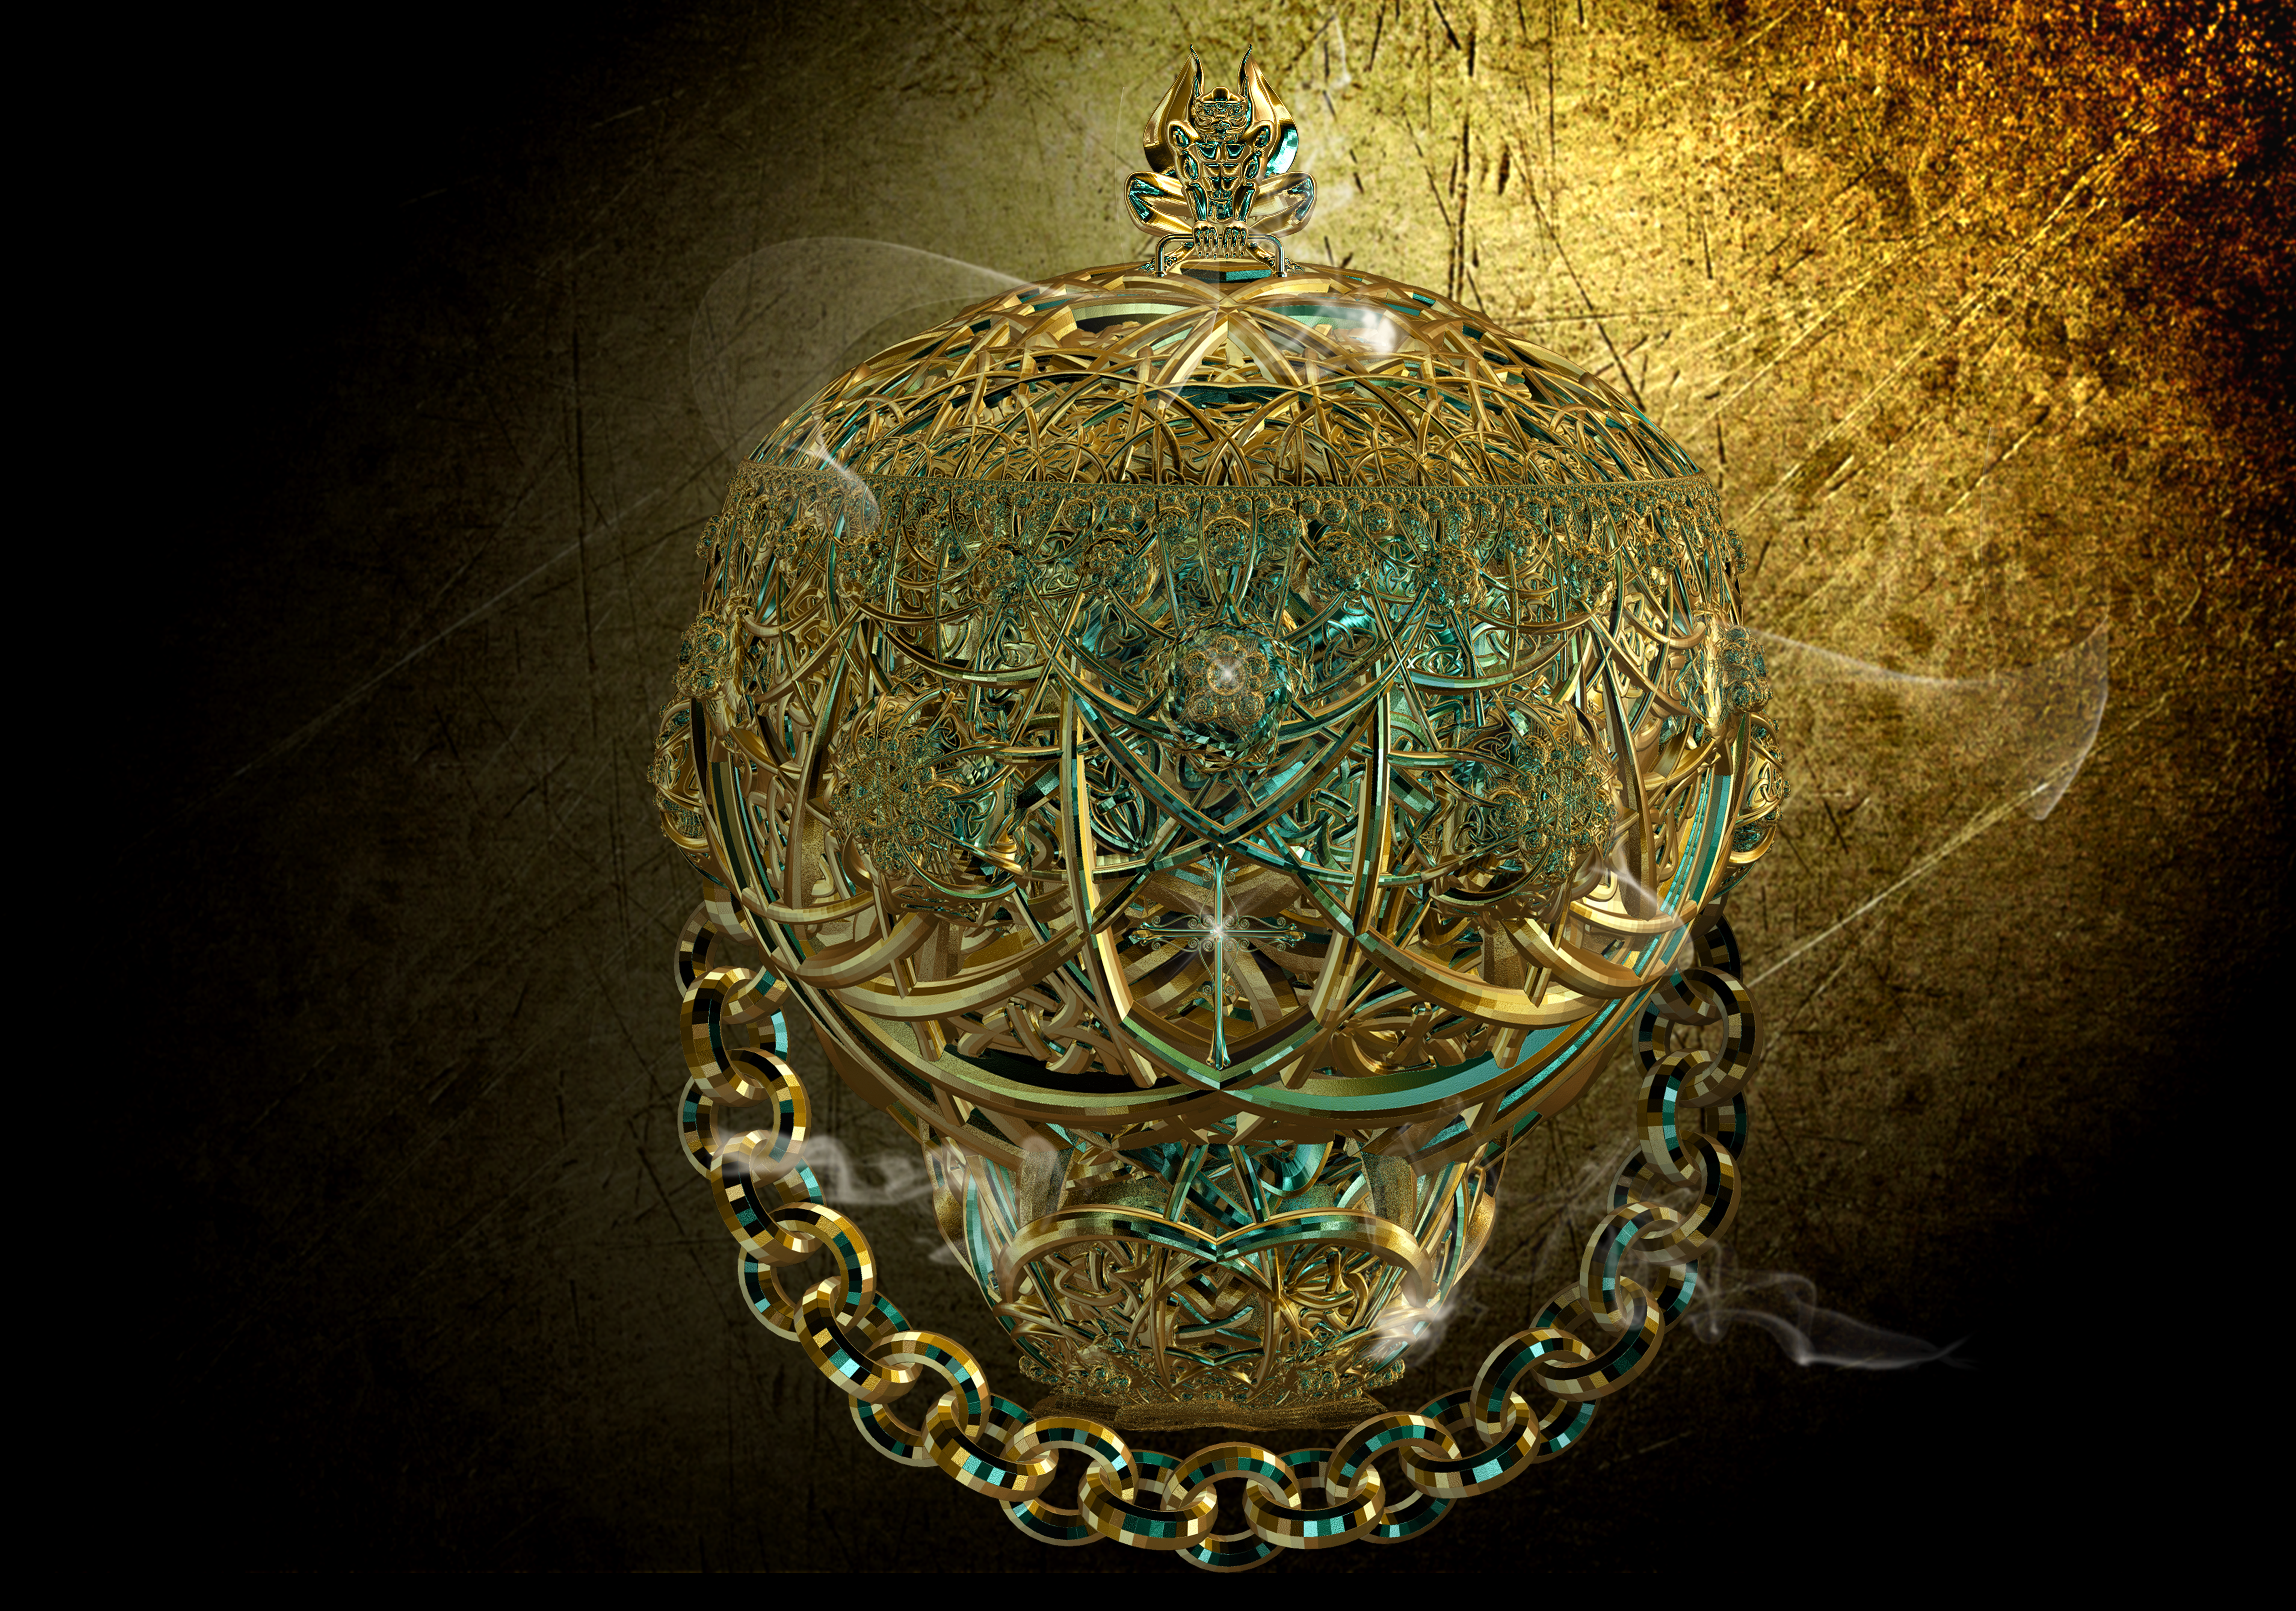 Incense Censer by Tate27kh